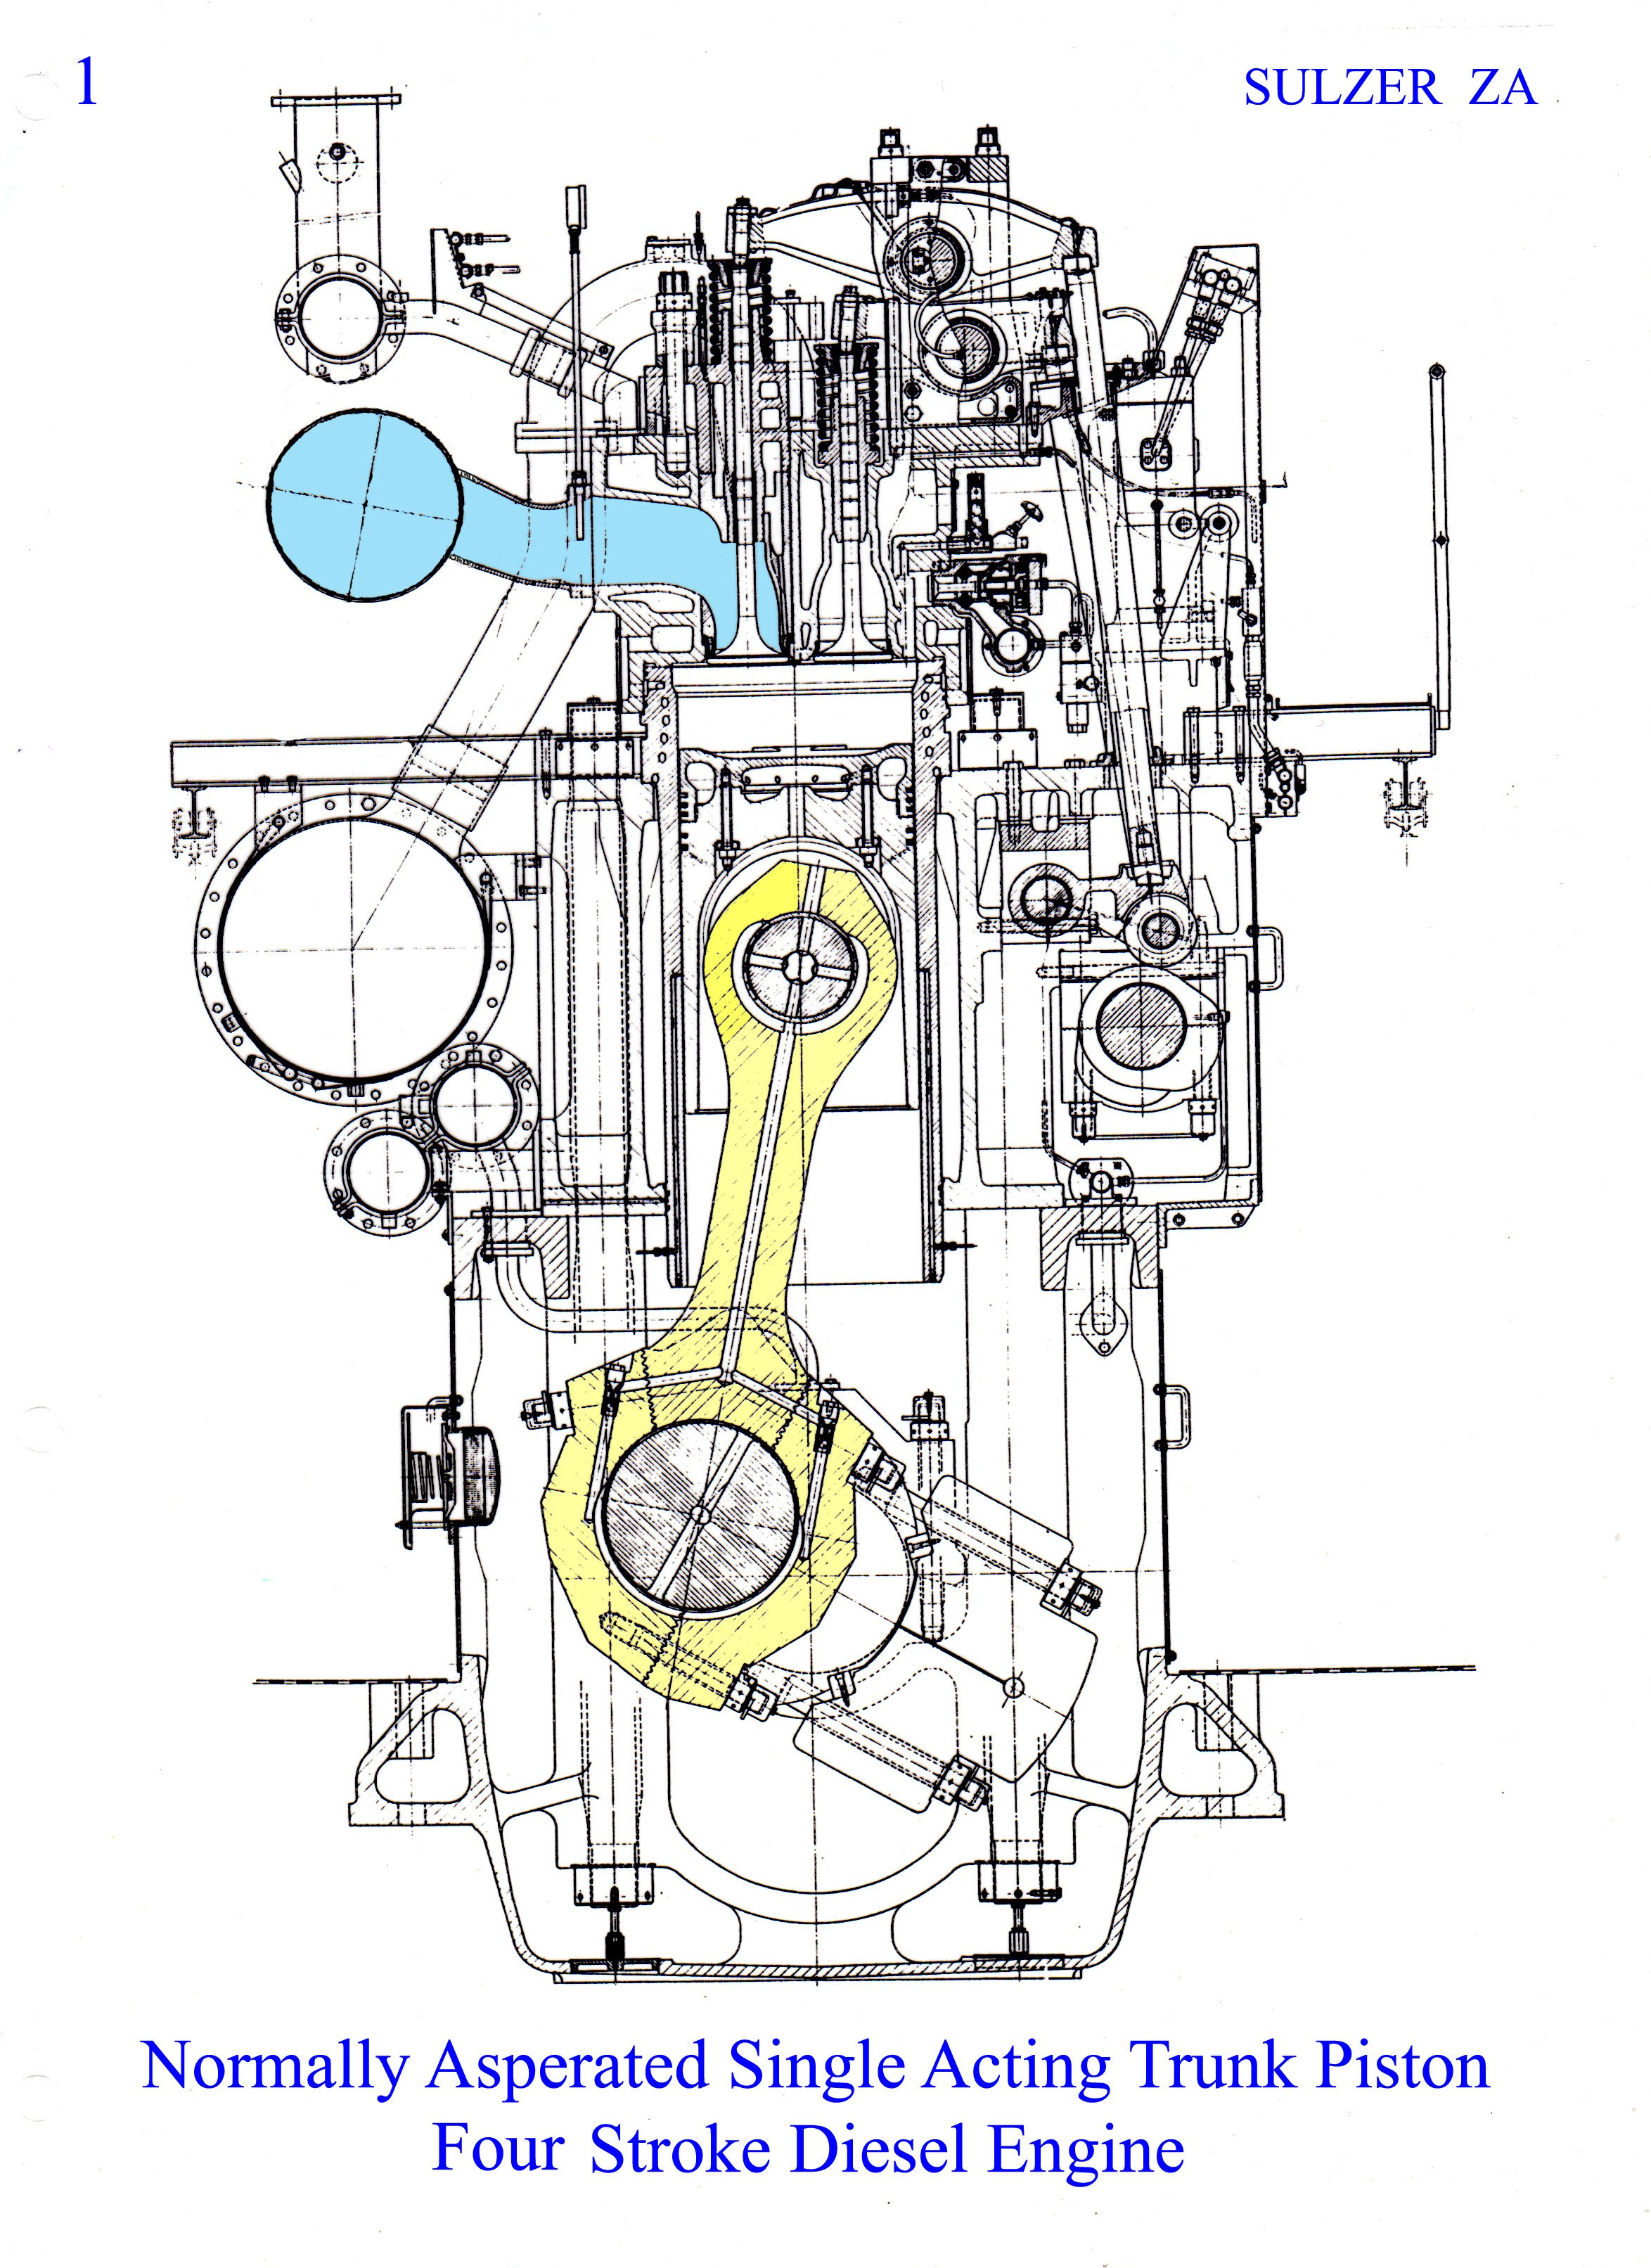 Diesel Engine Drawing At Free For Personal Use 4 Stroke Diagram 2348x3225 The